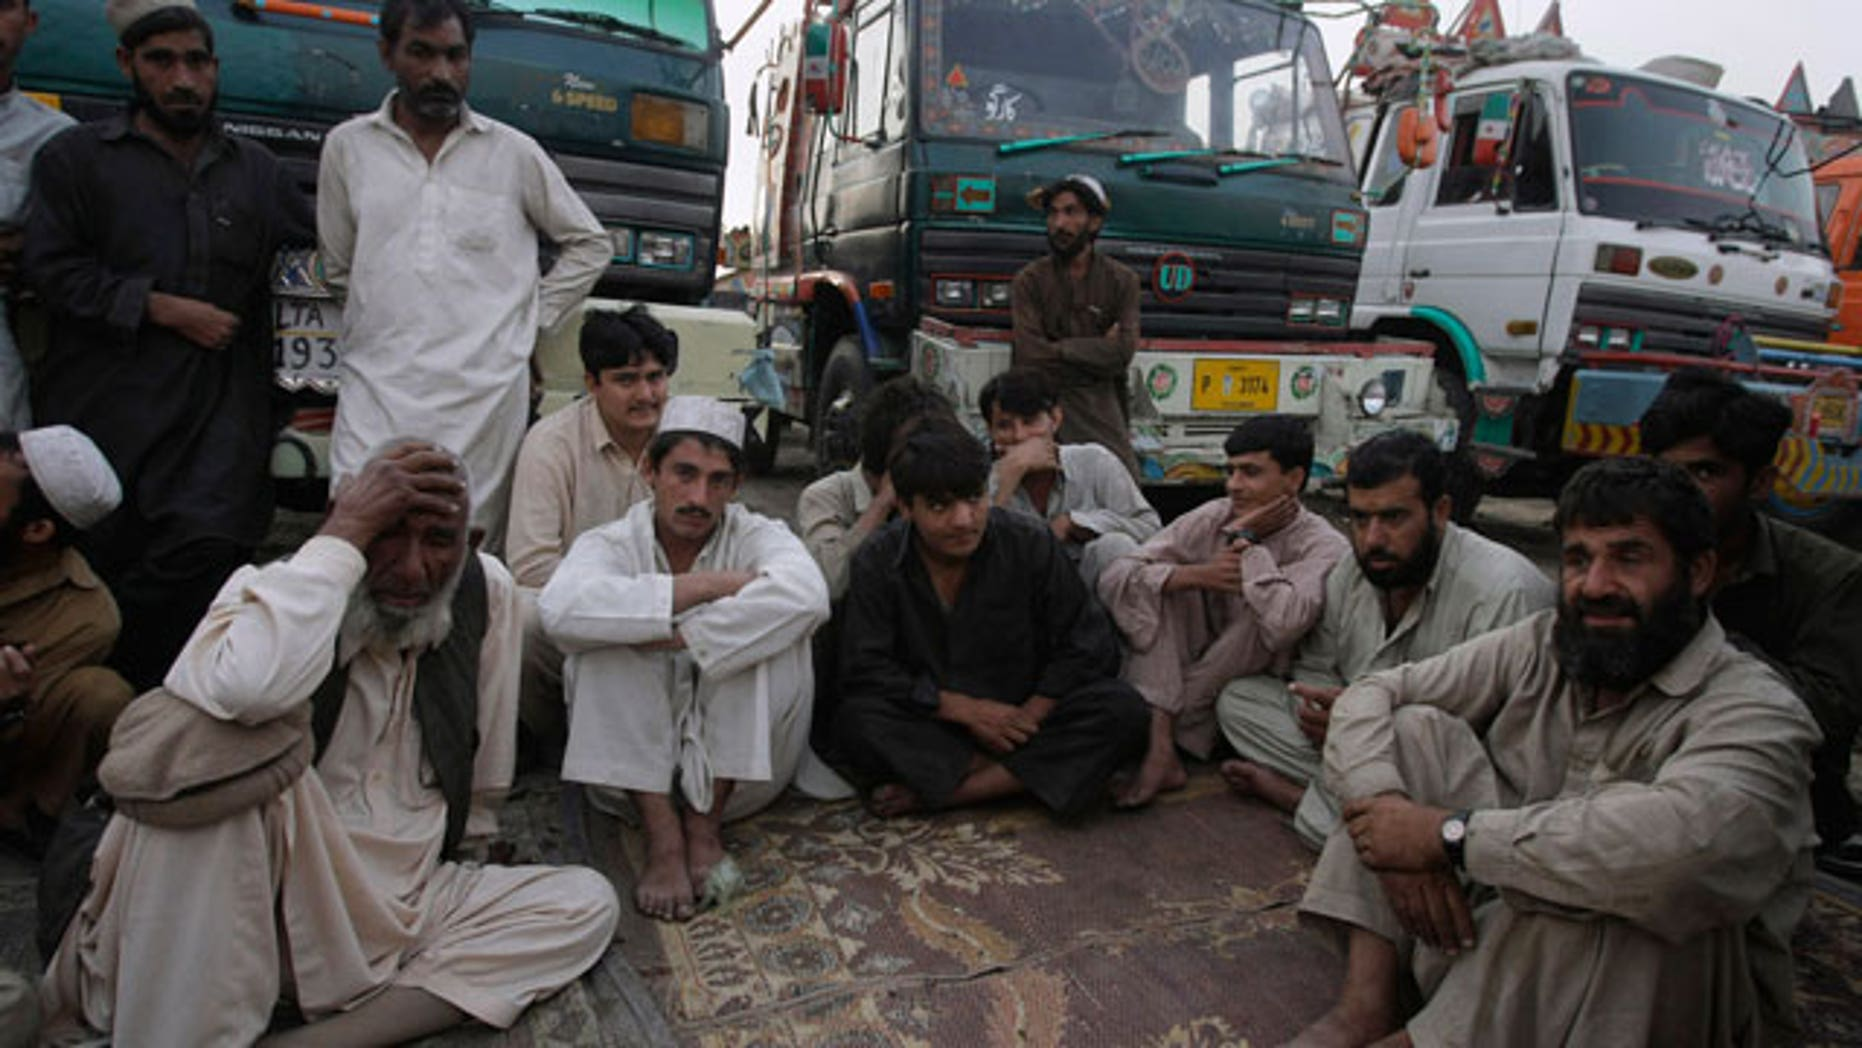 Dec. 8, 2011: Pakistani truck drivers and their assistants gather at a terminal in Karachi, Pakistan. Pakistan closed its two Afghan crossings in Chaman and Torkham, in the northwest Khyber tribal area, almost immediately after NATO aircraft attacked two army posts along the border before dawn on Nov. 26.